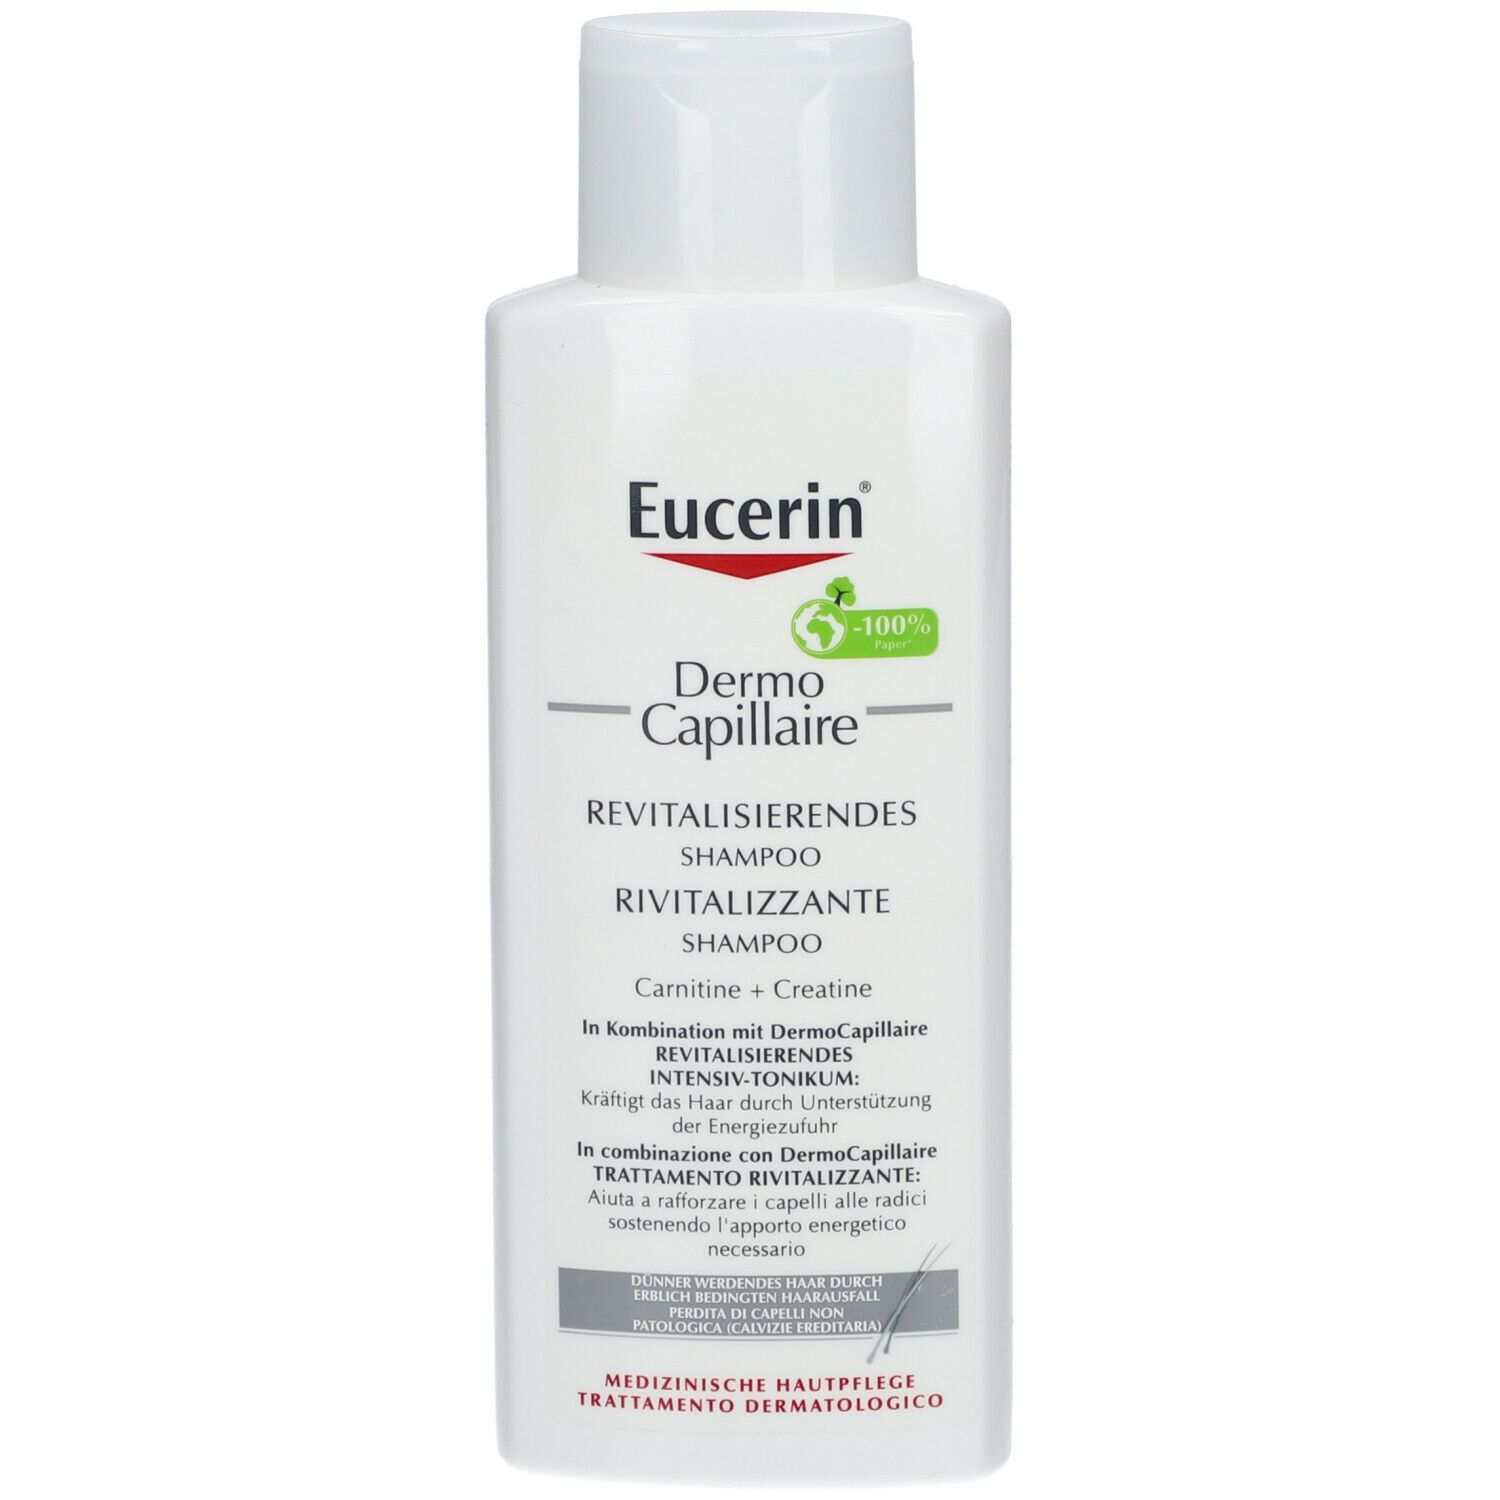 Image of Eucerin® DermoCapillaire Revitalisierendes Shampoo